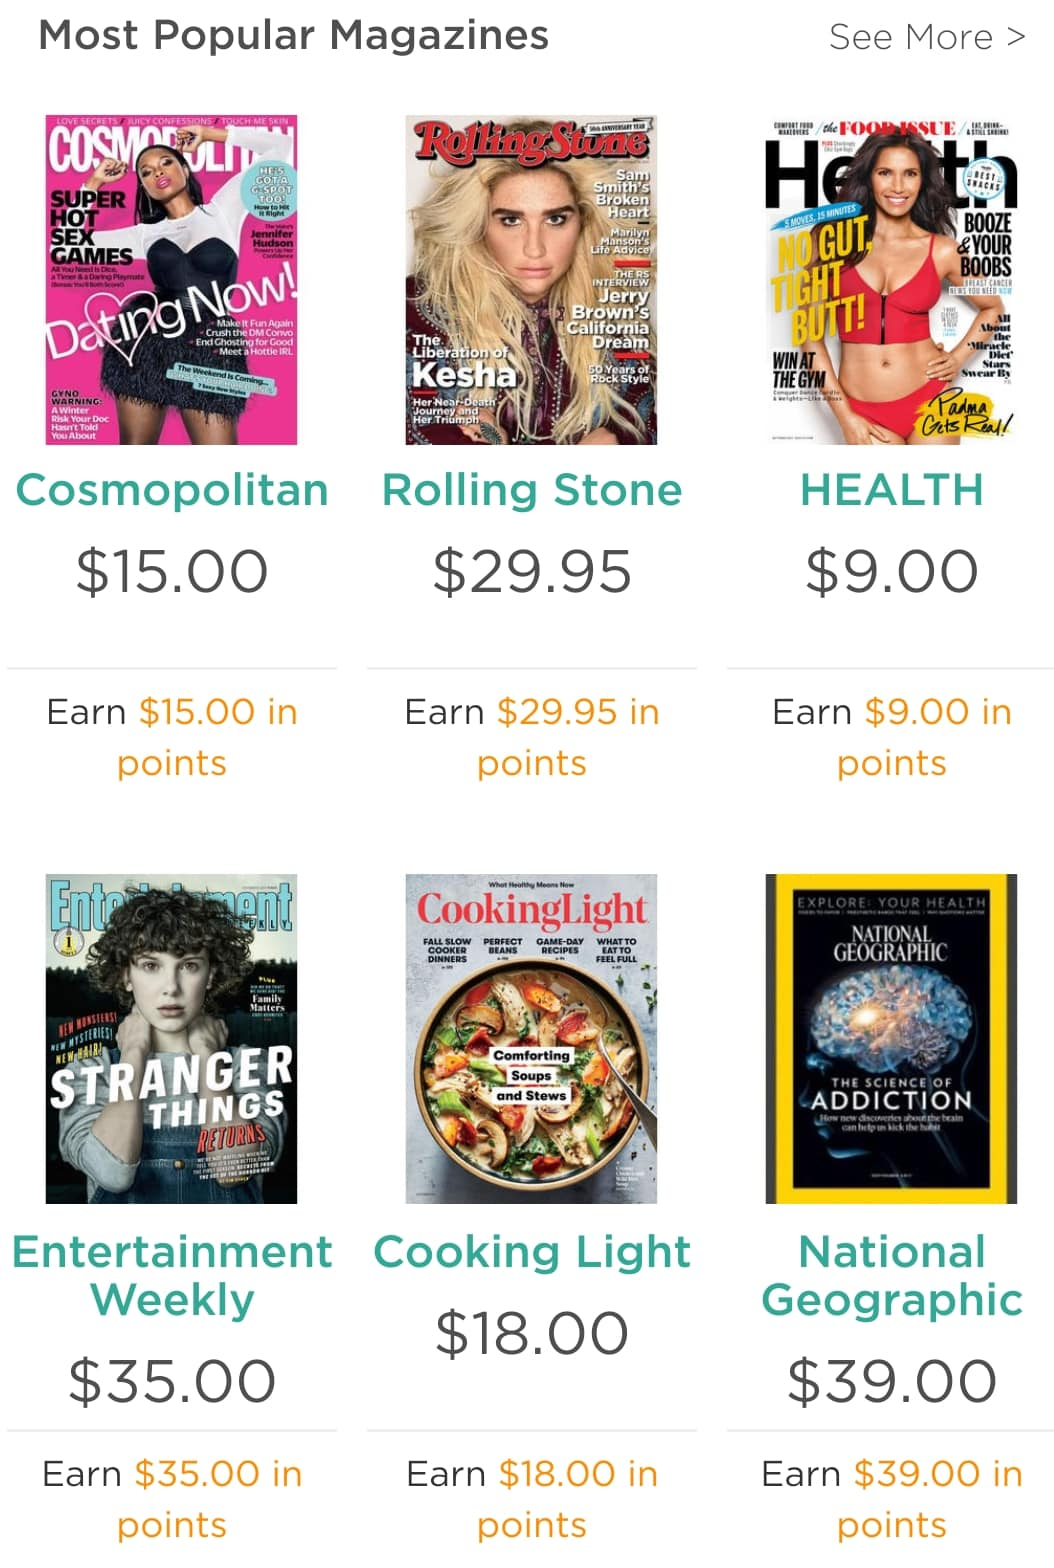 SYW members - 100% back in points on all your favorite magazines